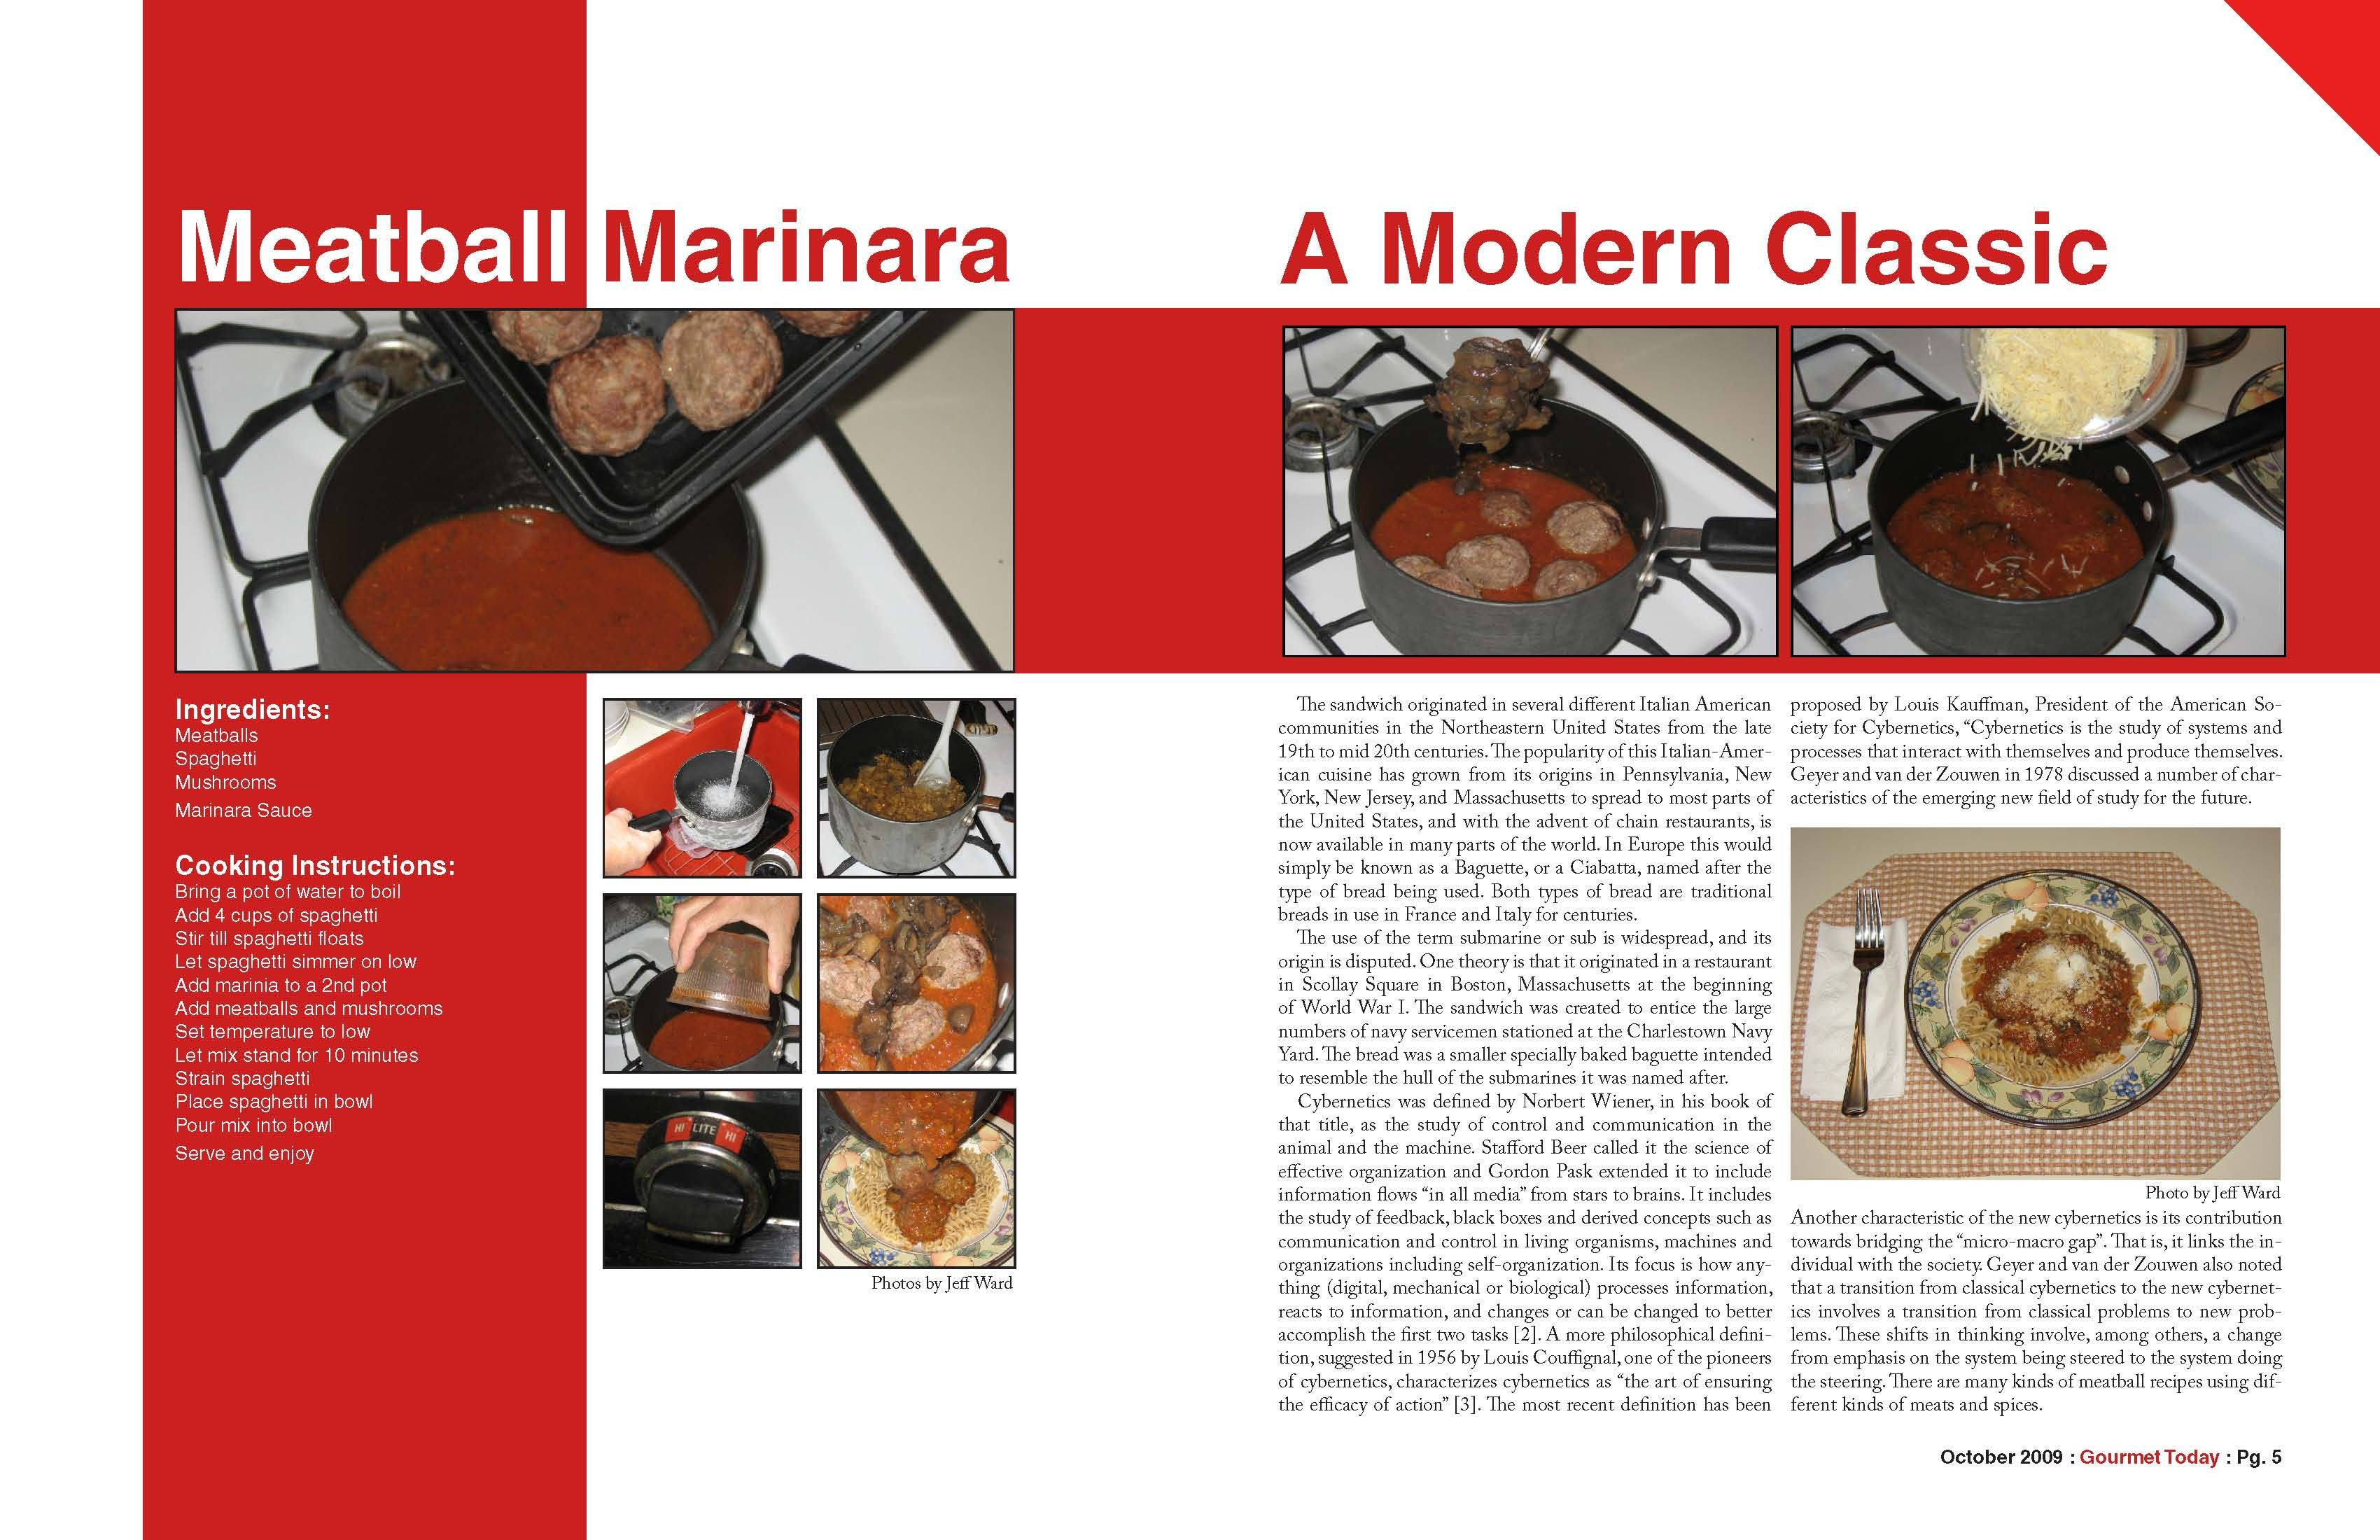 http jsward17 files wordpress com 2010 03 meatball marinara 11x17